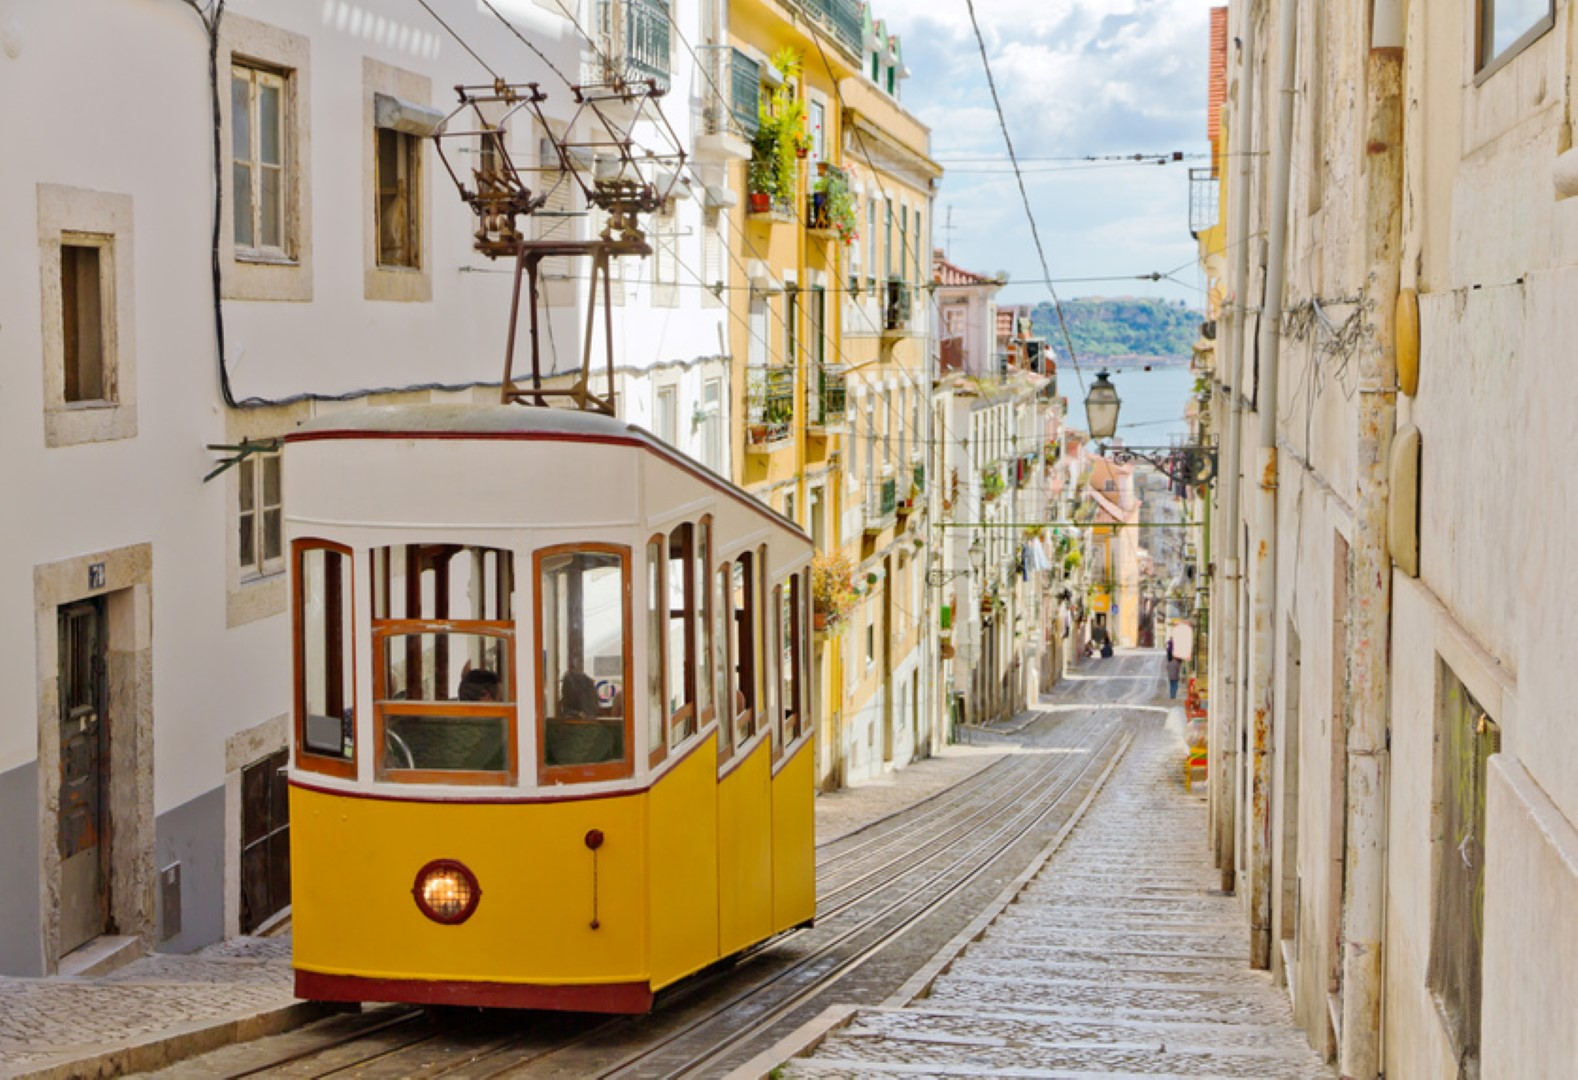 viajar en verano Lisbon's Gloria funicular classified as a national monument opened 1885 located on the west side of the Avenida da Liberdade connects downtown withBairro Alto.